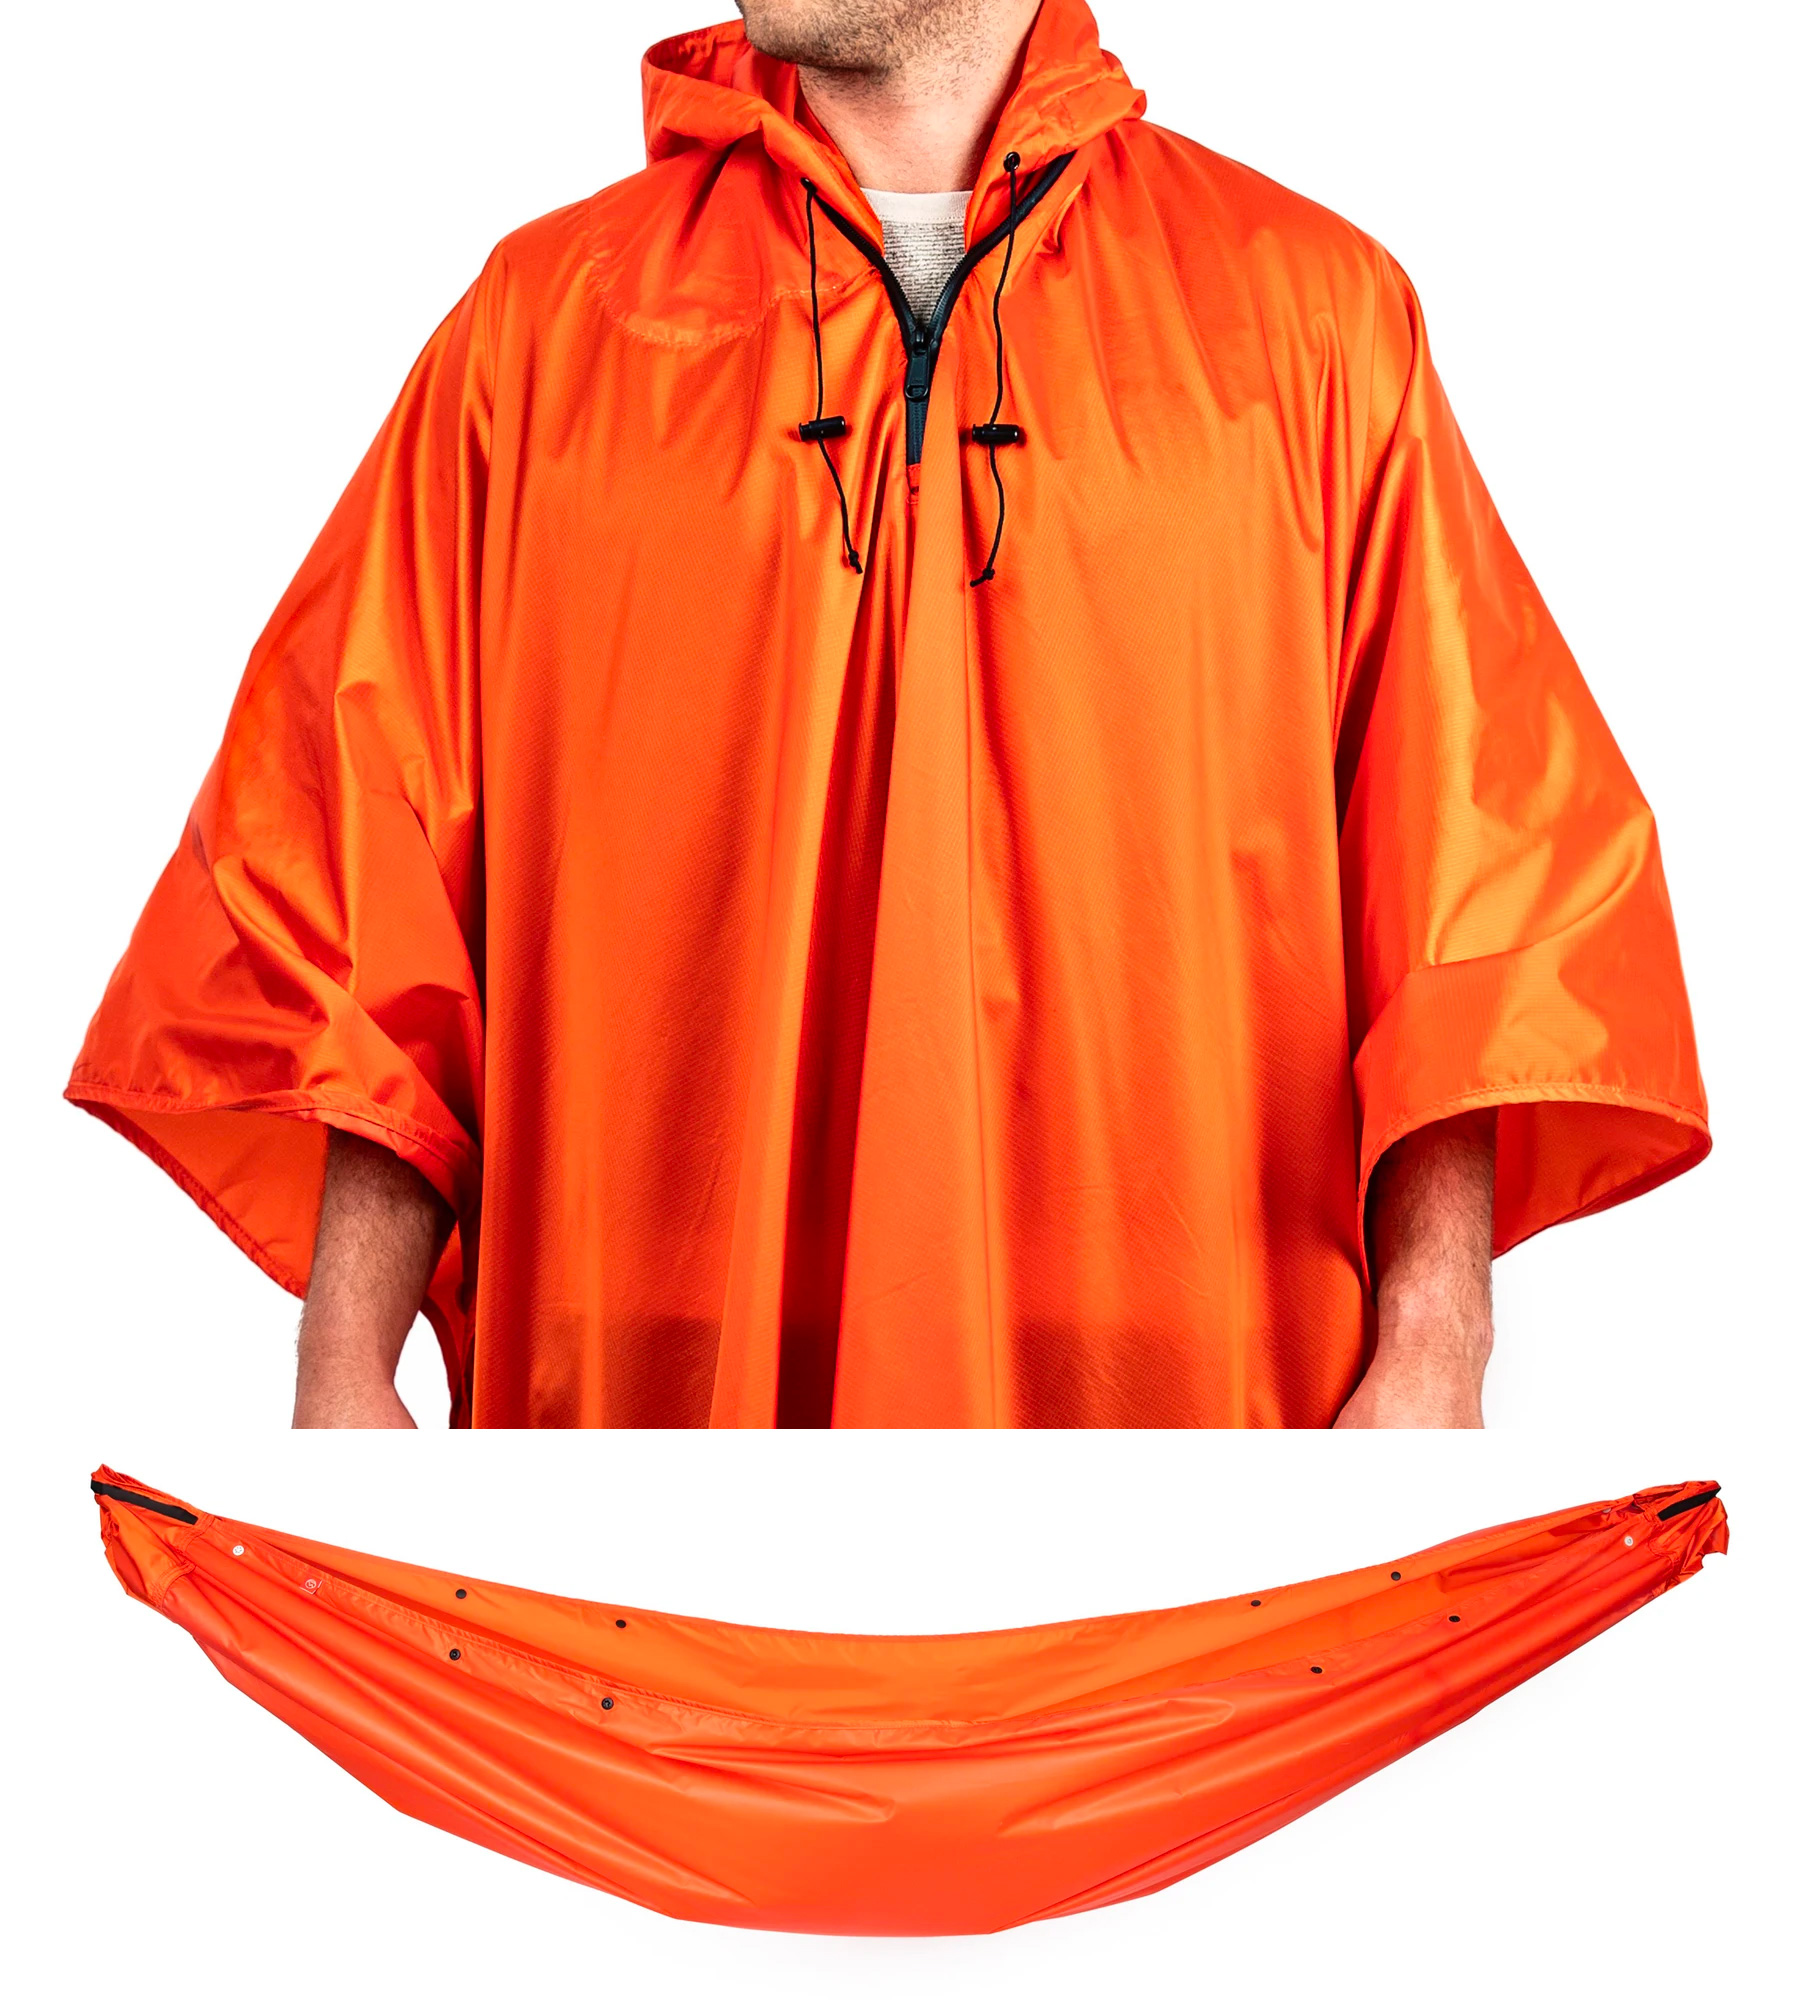 Campo is a Packable Poncho, Hammock & More at werd.com